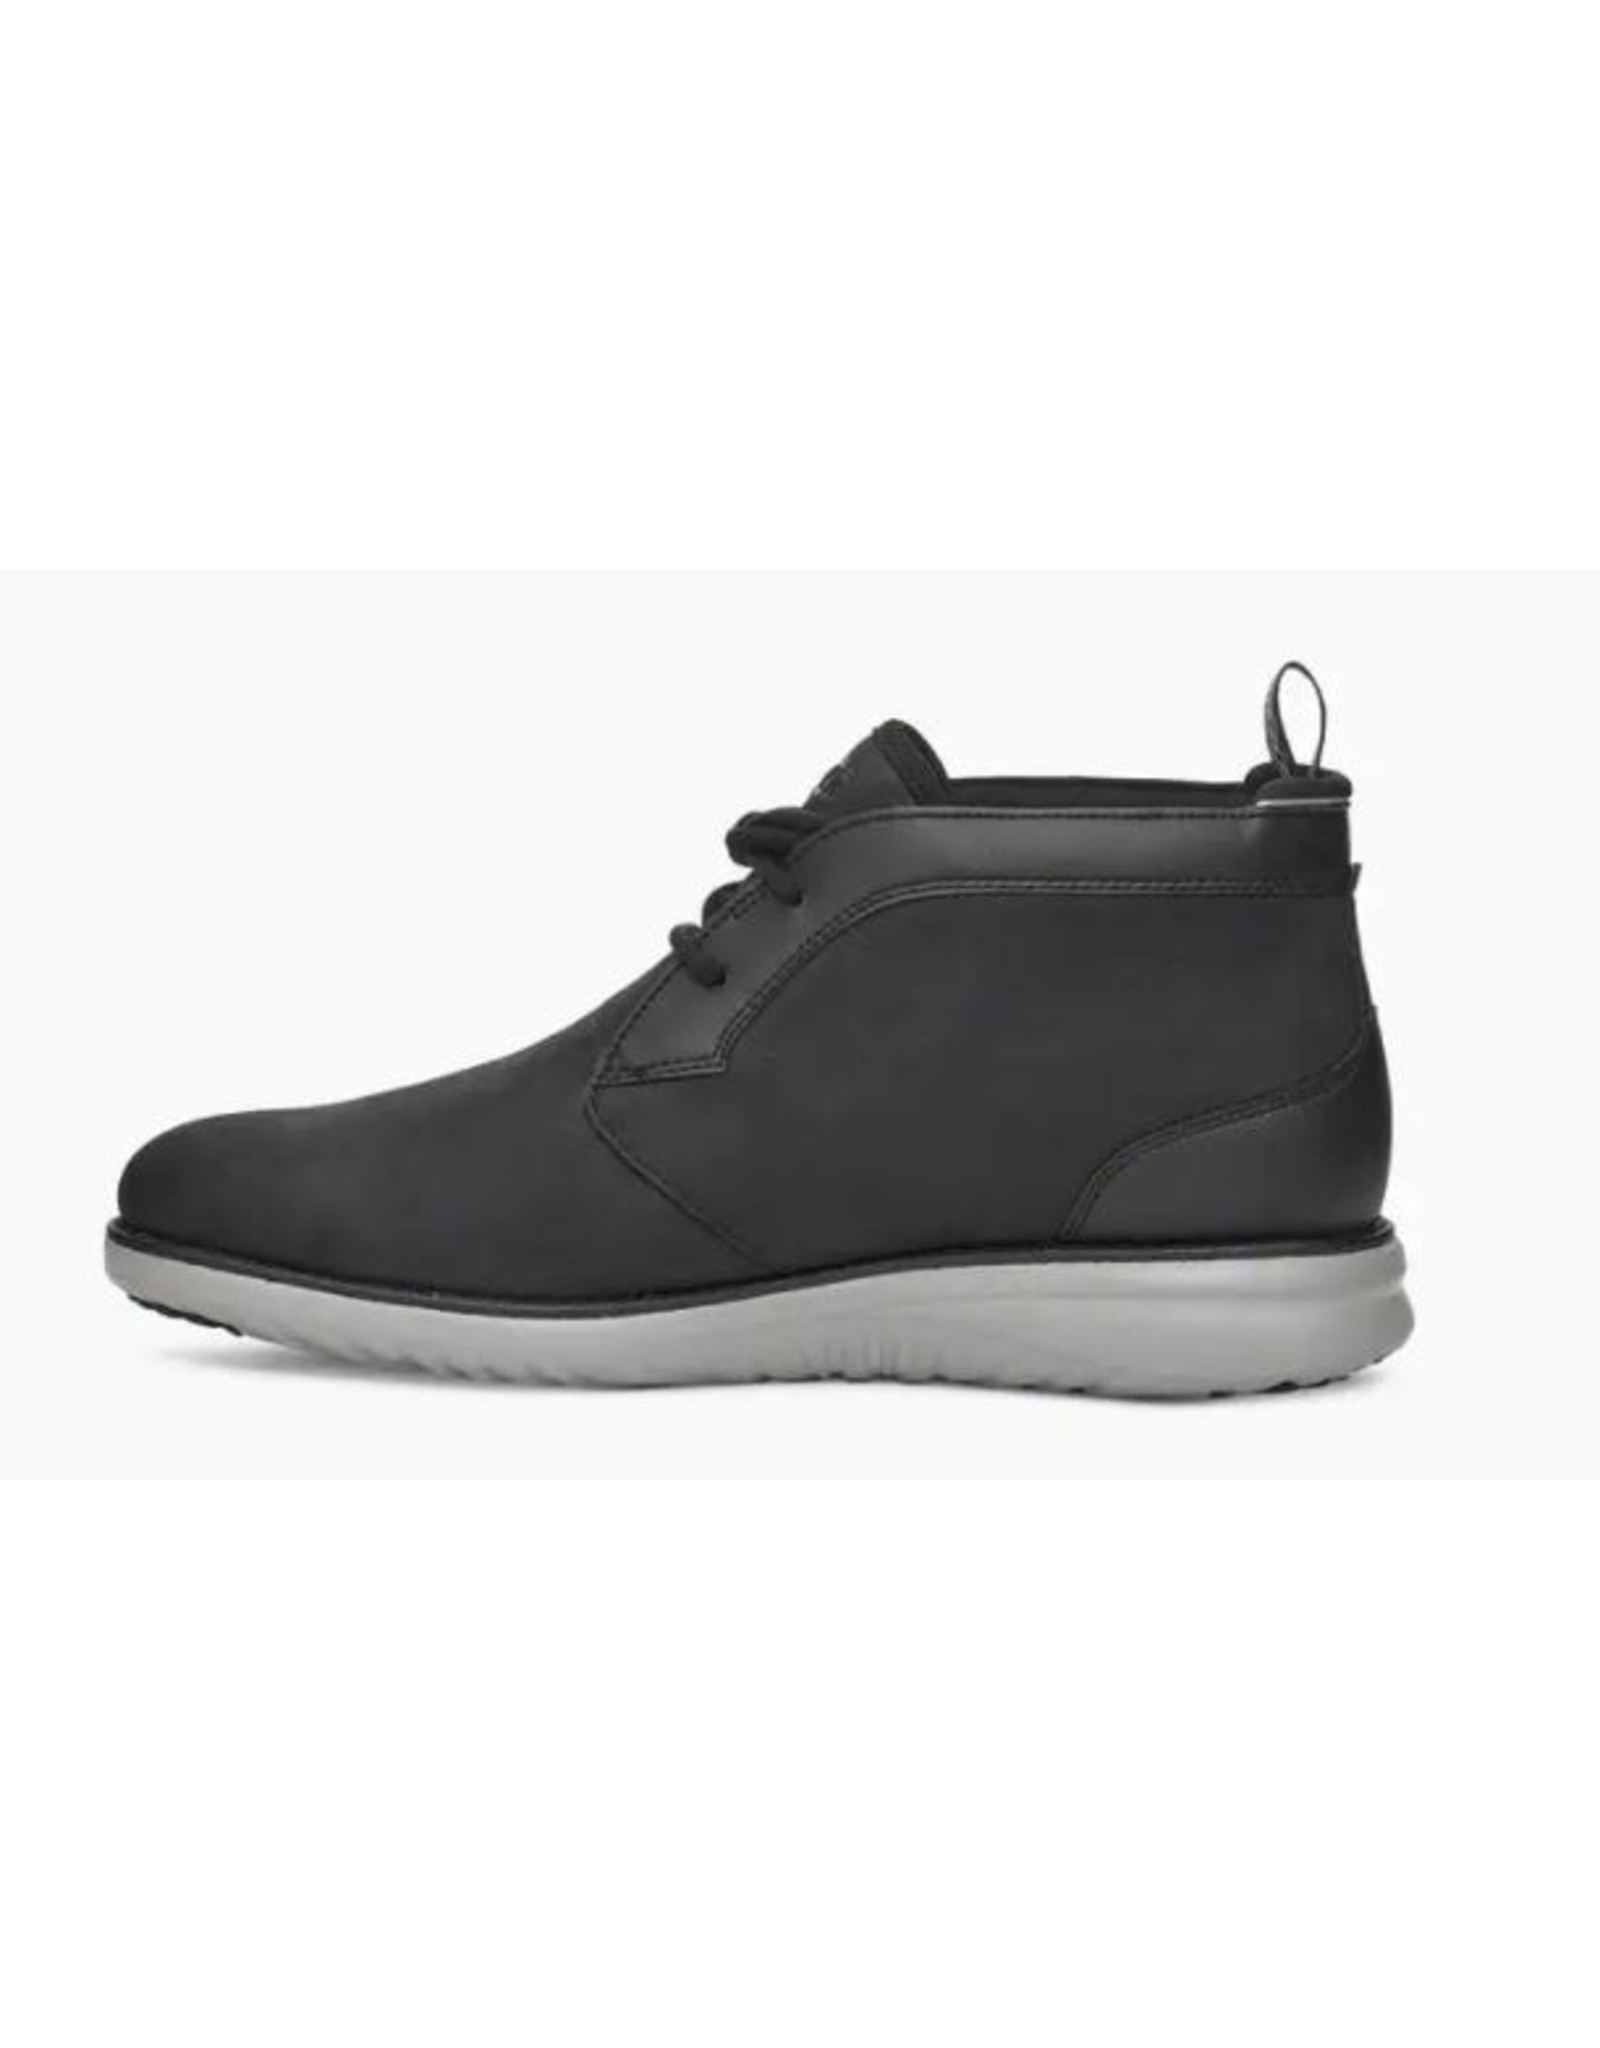 Uggs Men's Union Chukka